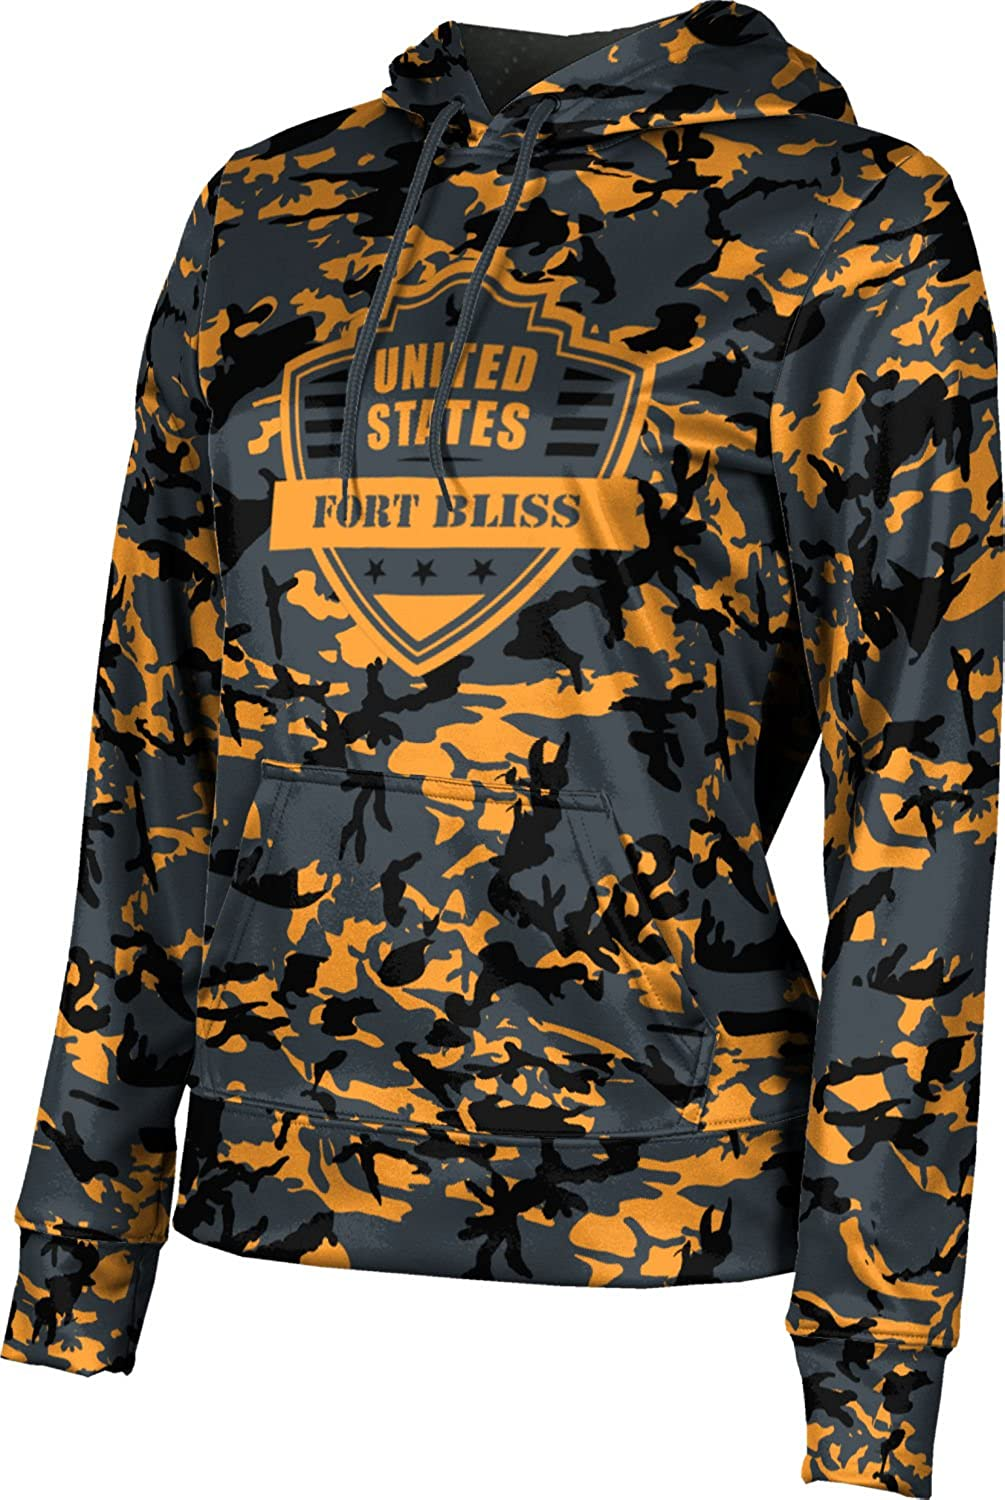 ProSphere Women's Fort Bliss Military Camo Pullover Hoodie